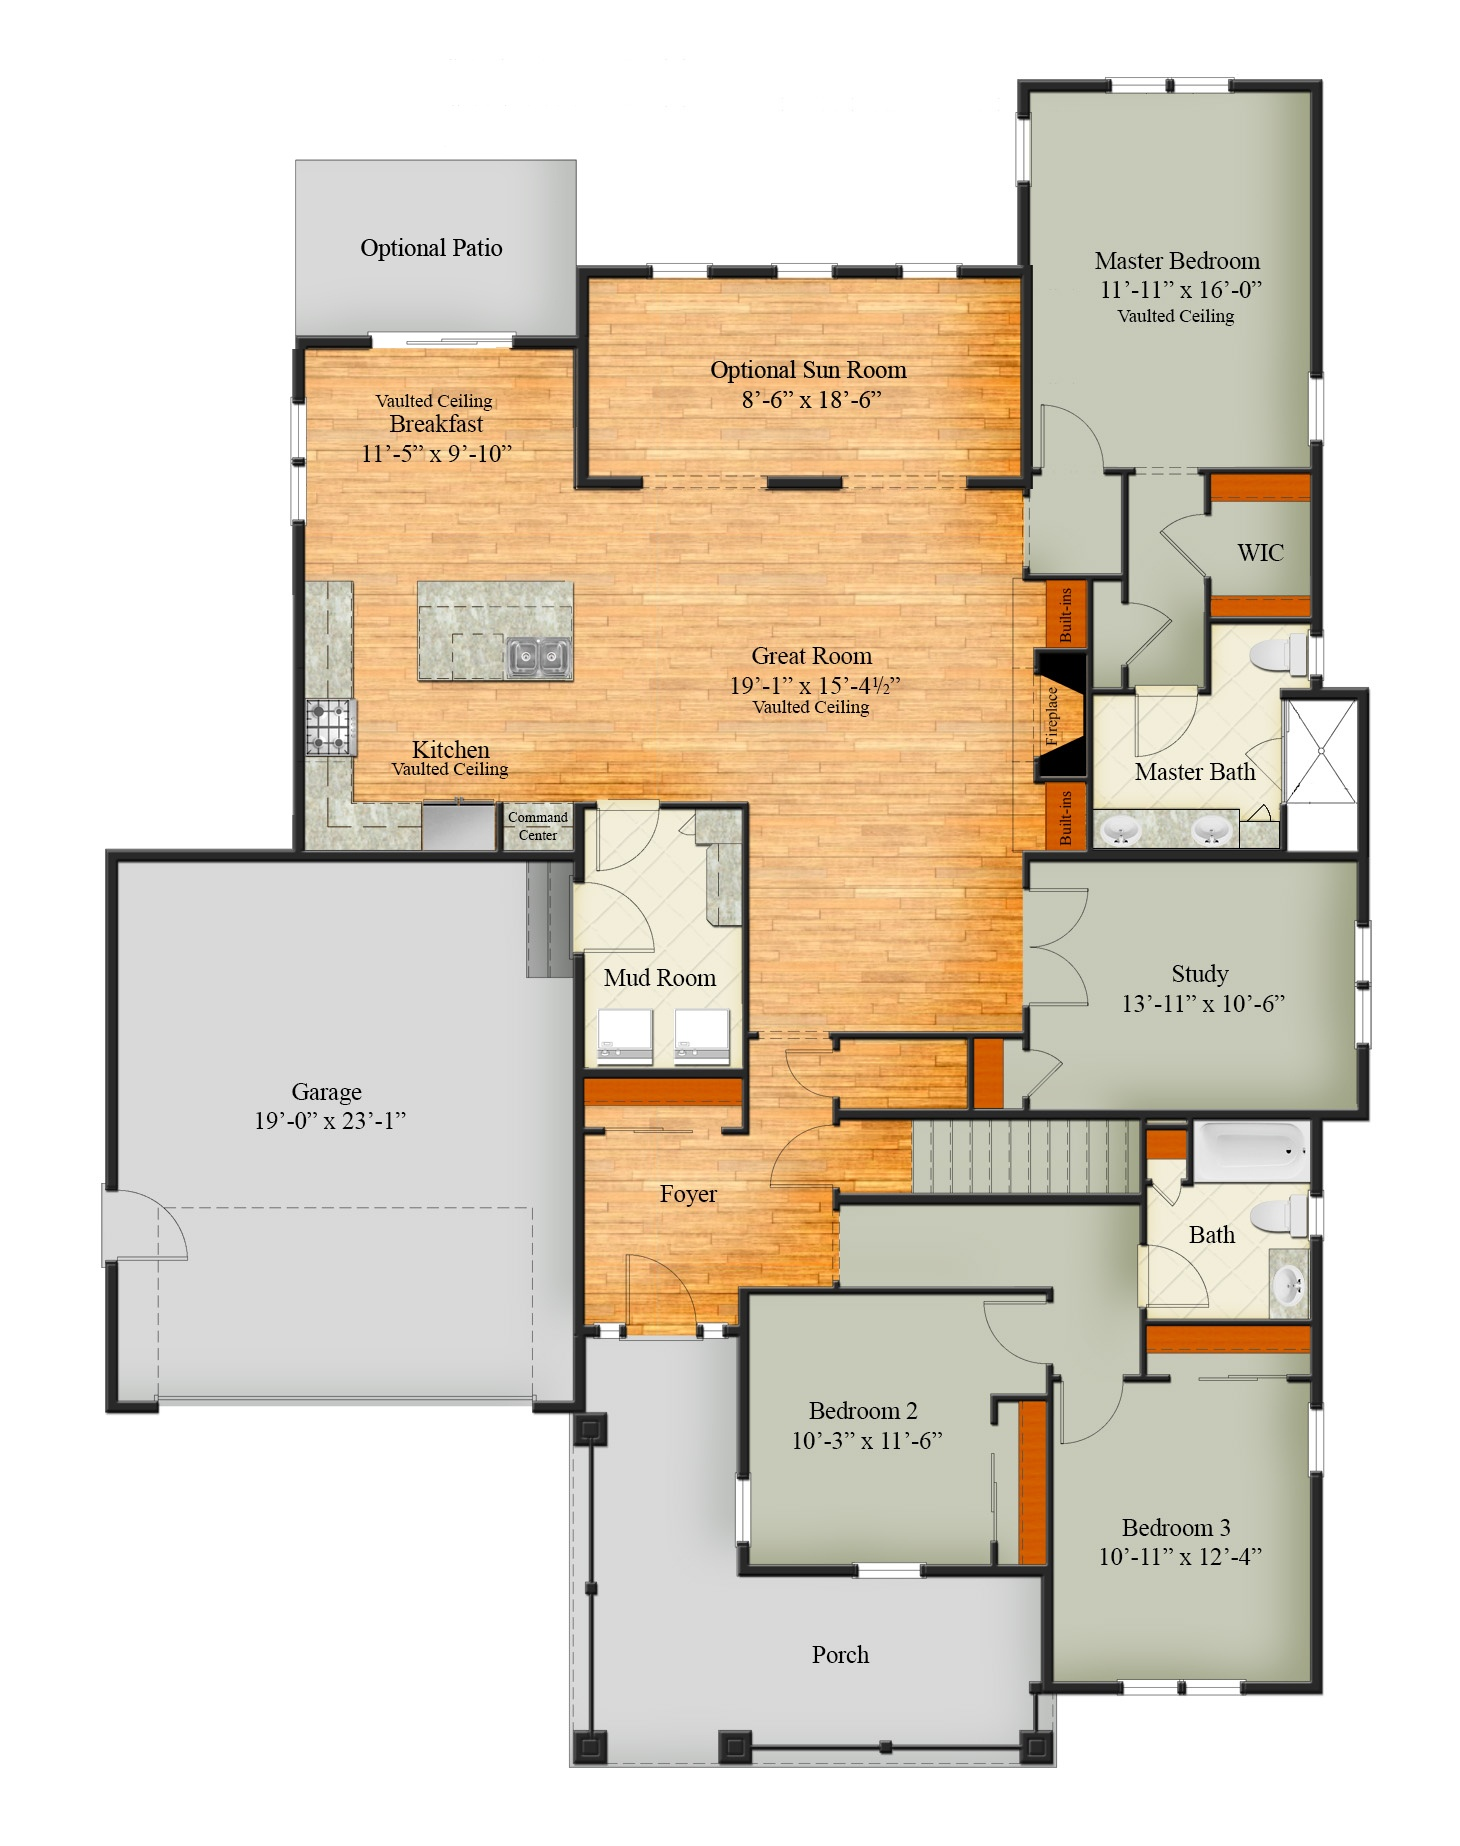 Saratoga floorplan website.jpg